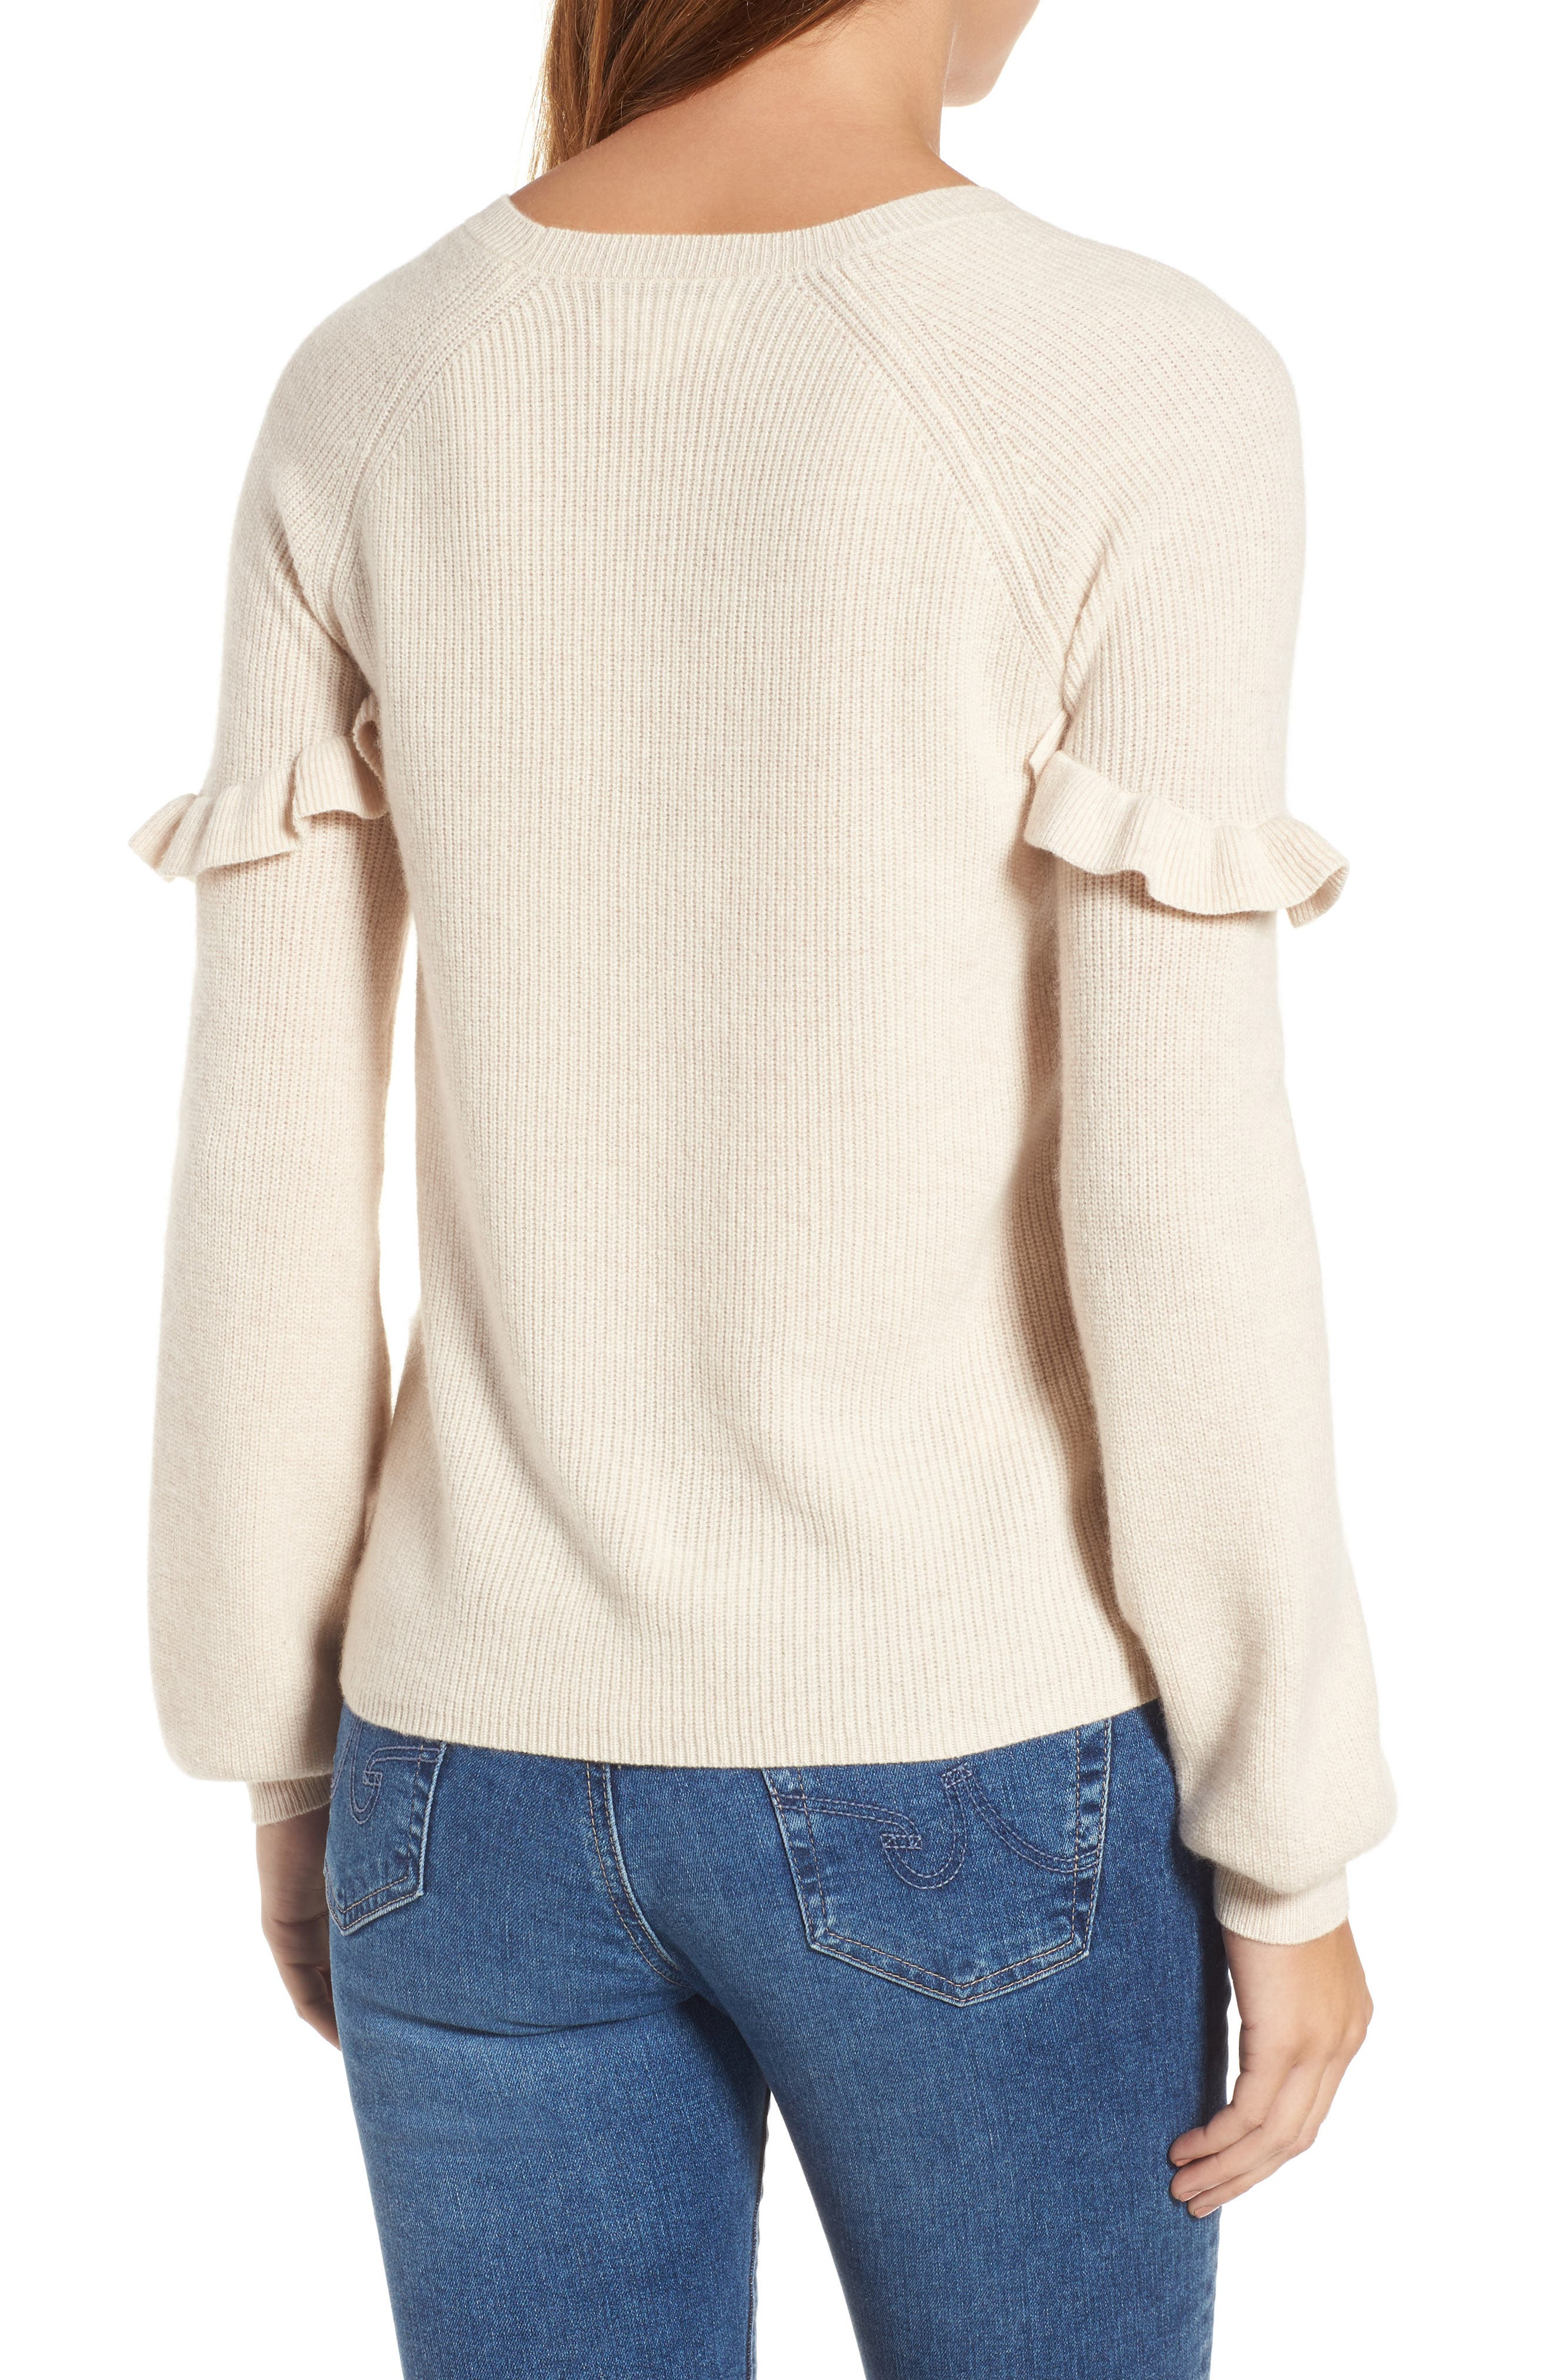 Cashmere Ruffle Shoulder Sweater,                             Alternate thumbnail 2, color,                             Bisque